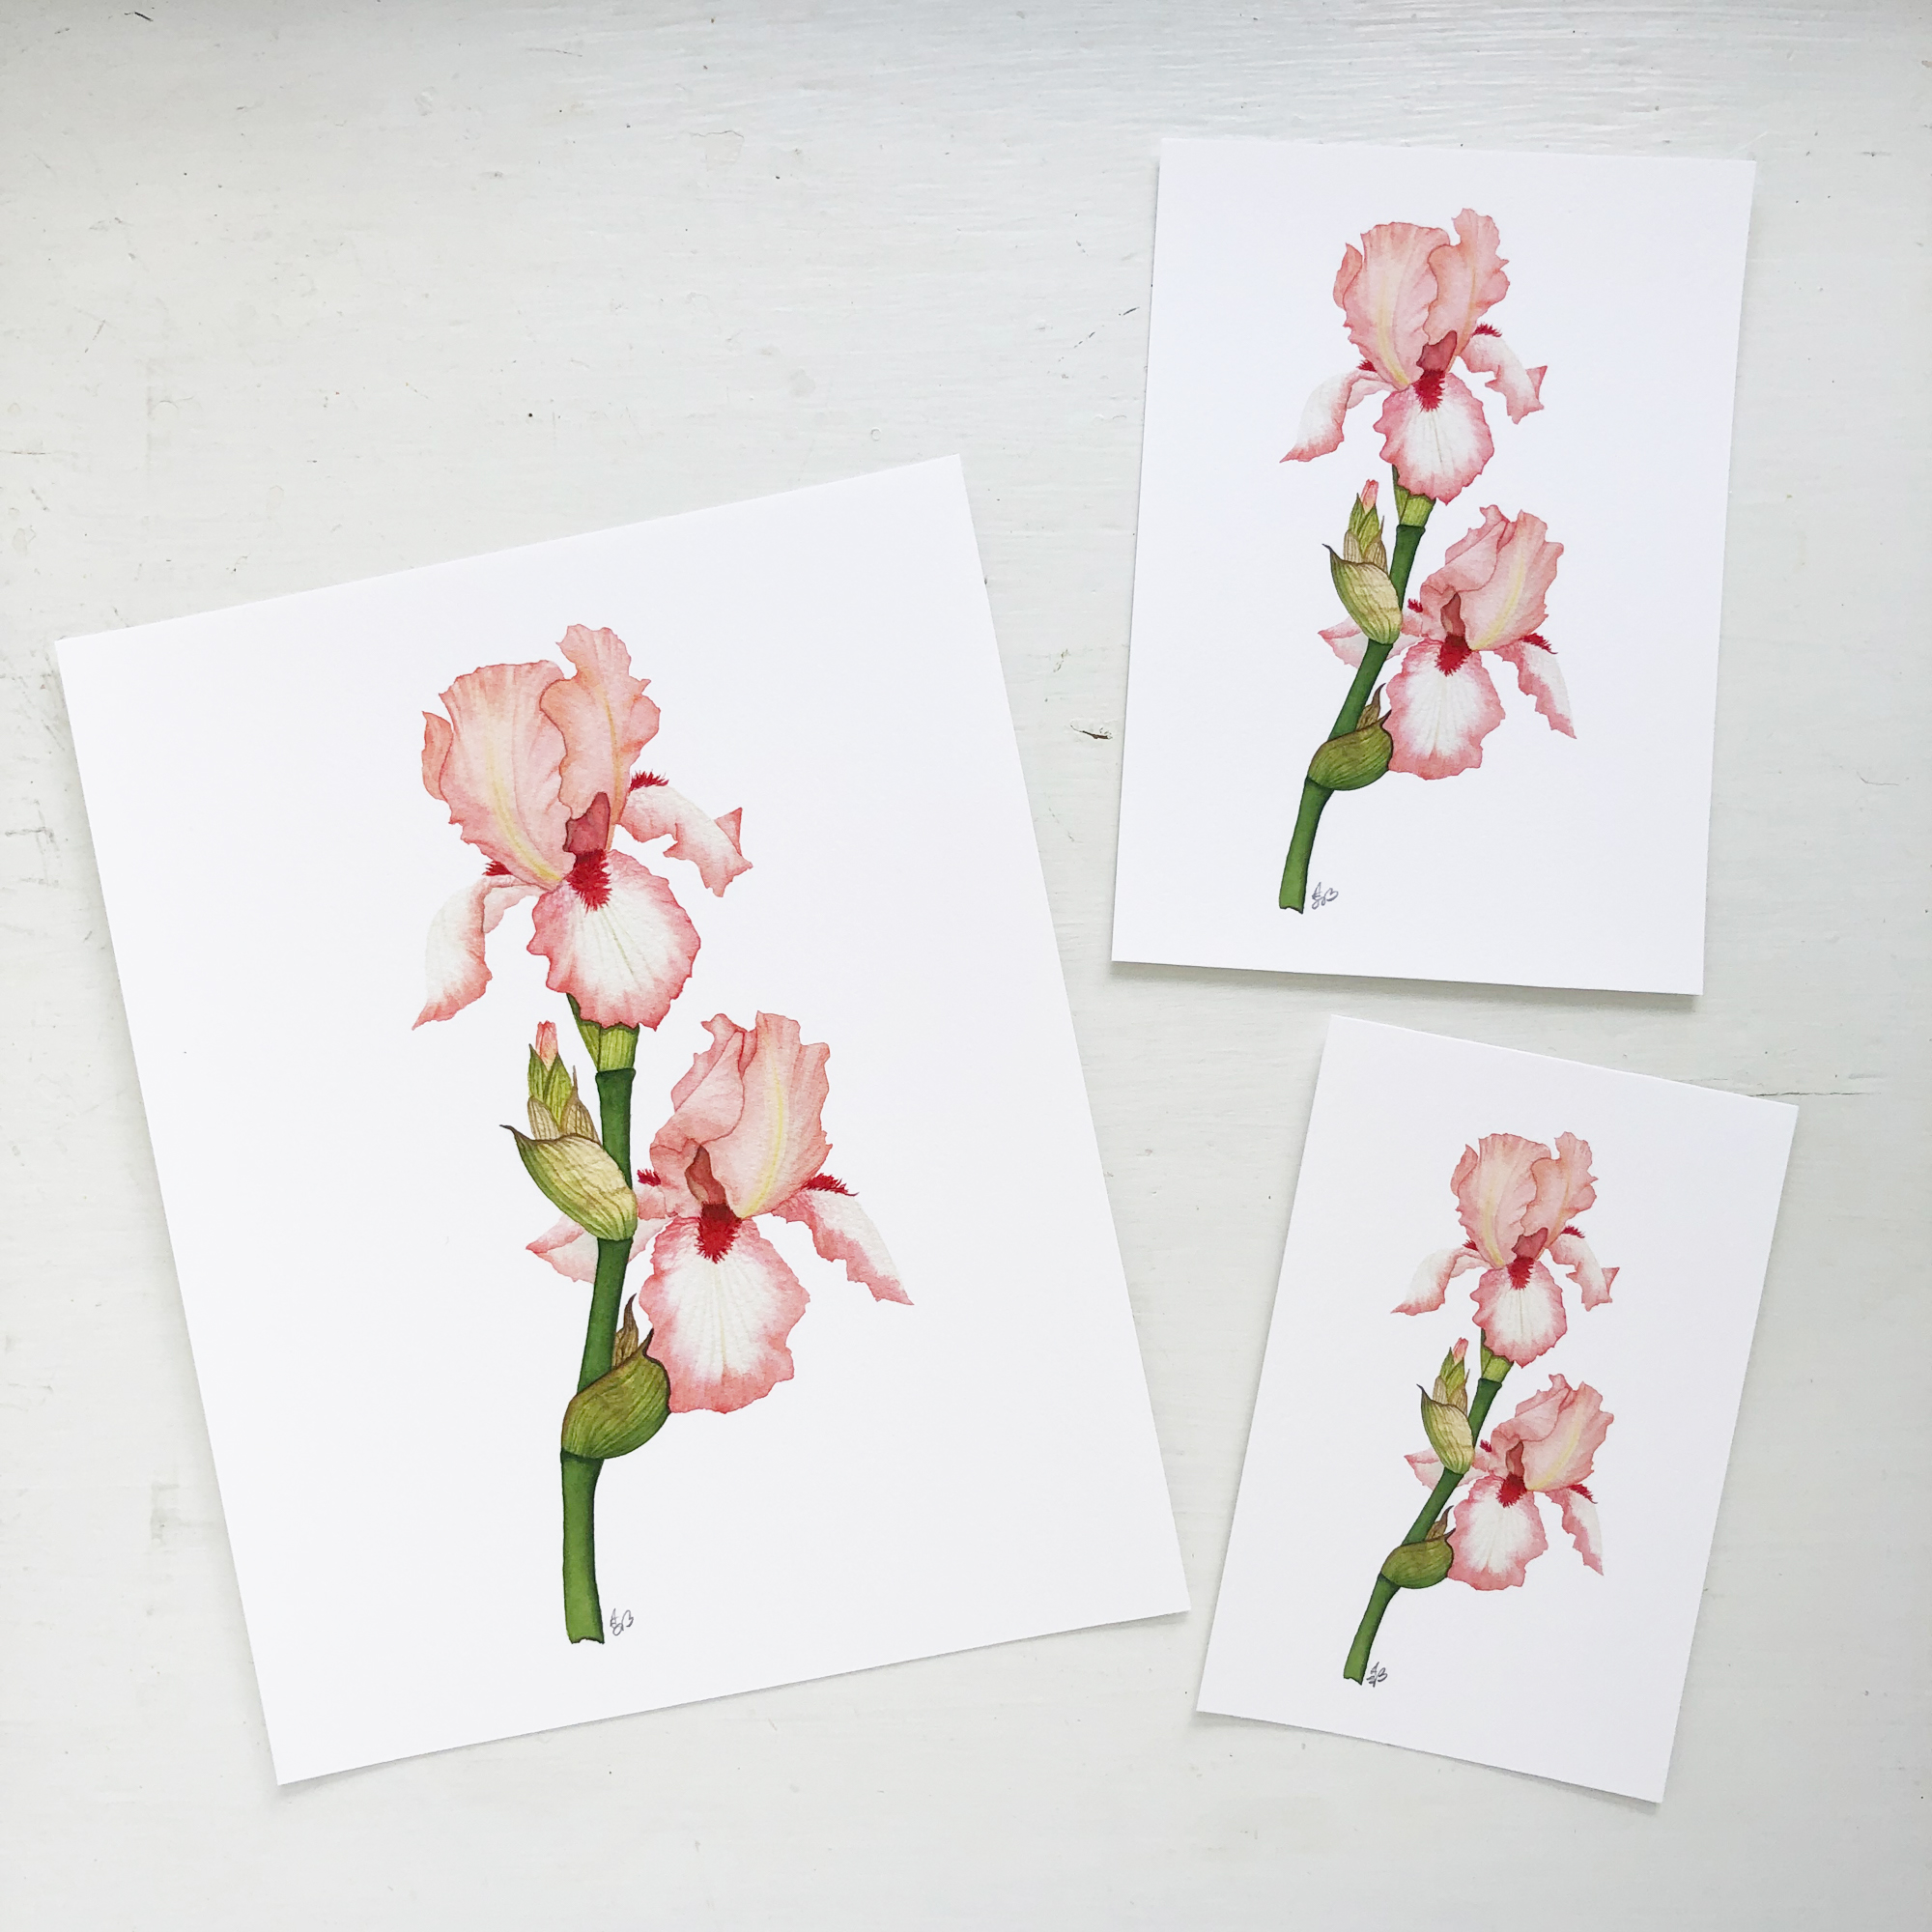 Peach Iris Prints are Available in Anne Butera's Etsy Shop